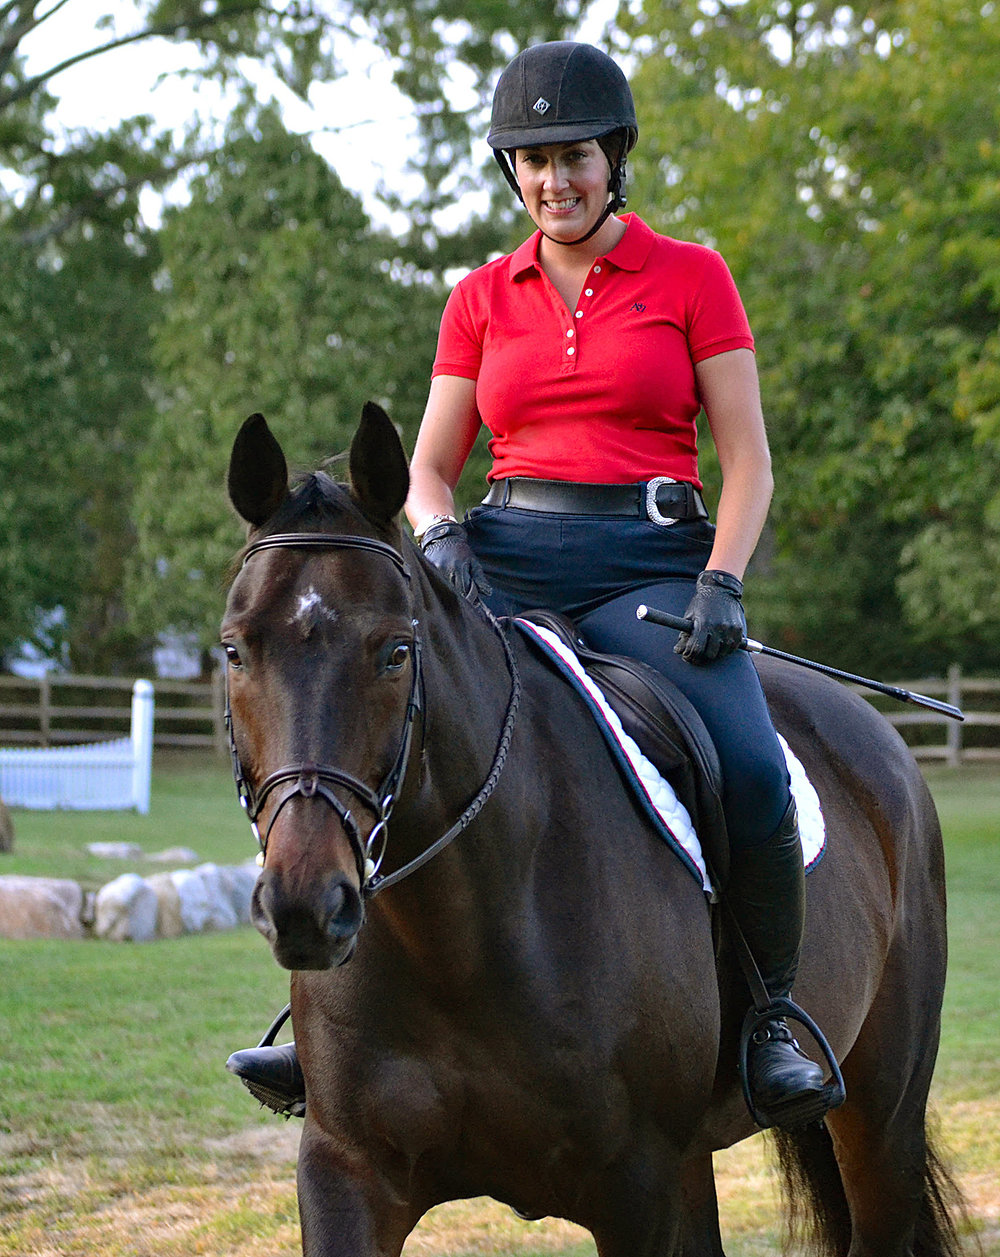 Lucia Rittenhouse-Montes, Head Trainer at Rockleigh Equestrian Centre